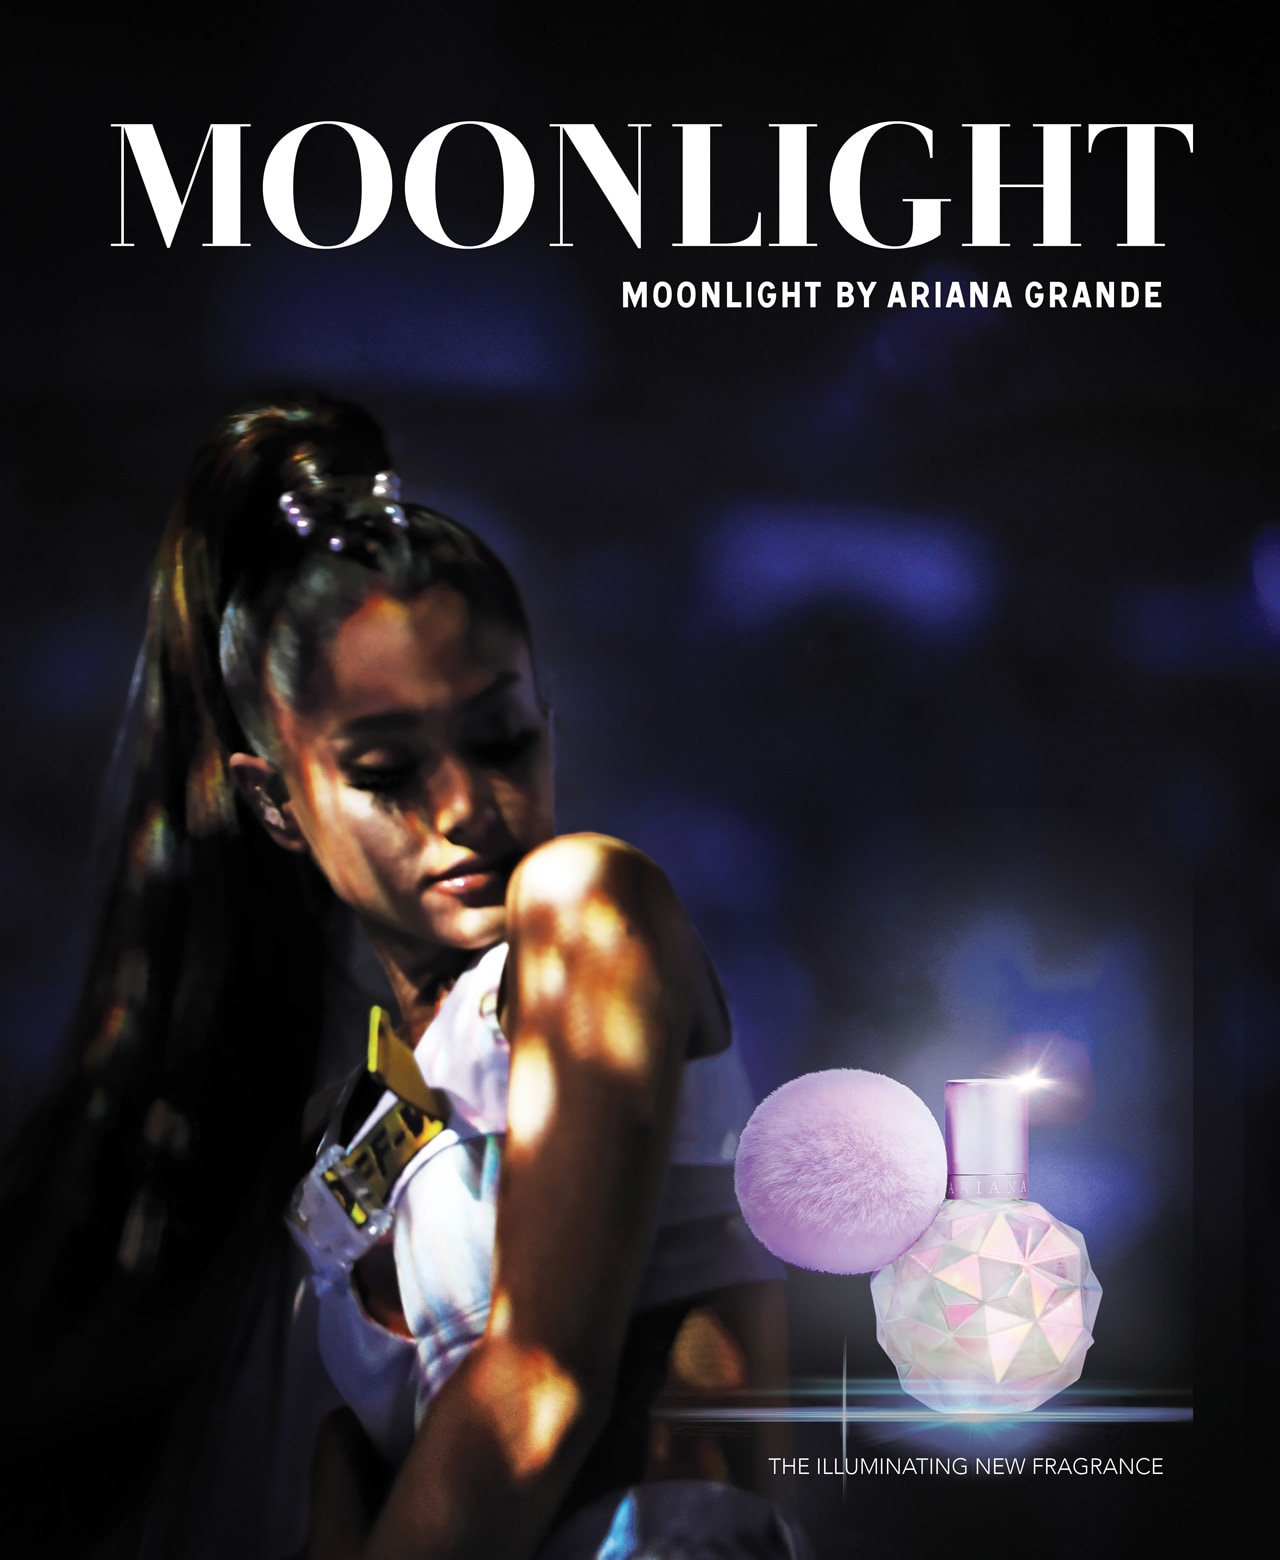 Moonlight by Ariana Grande